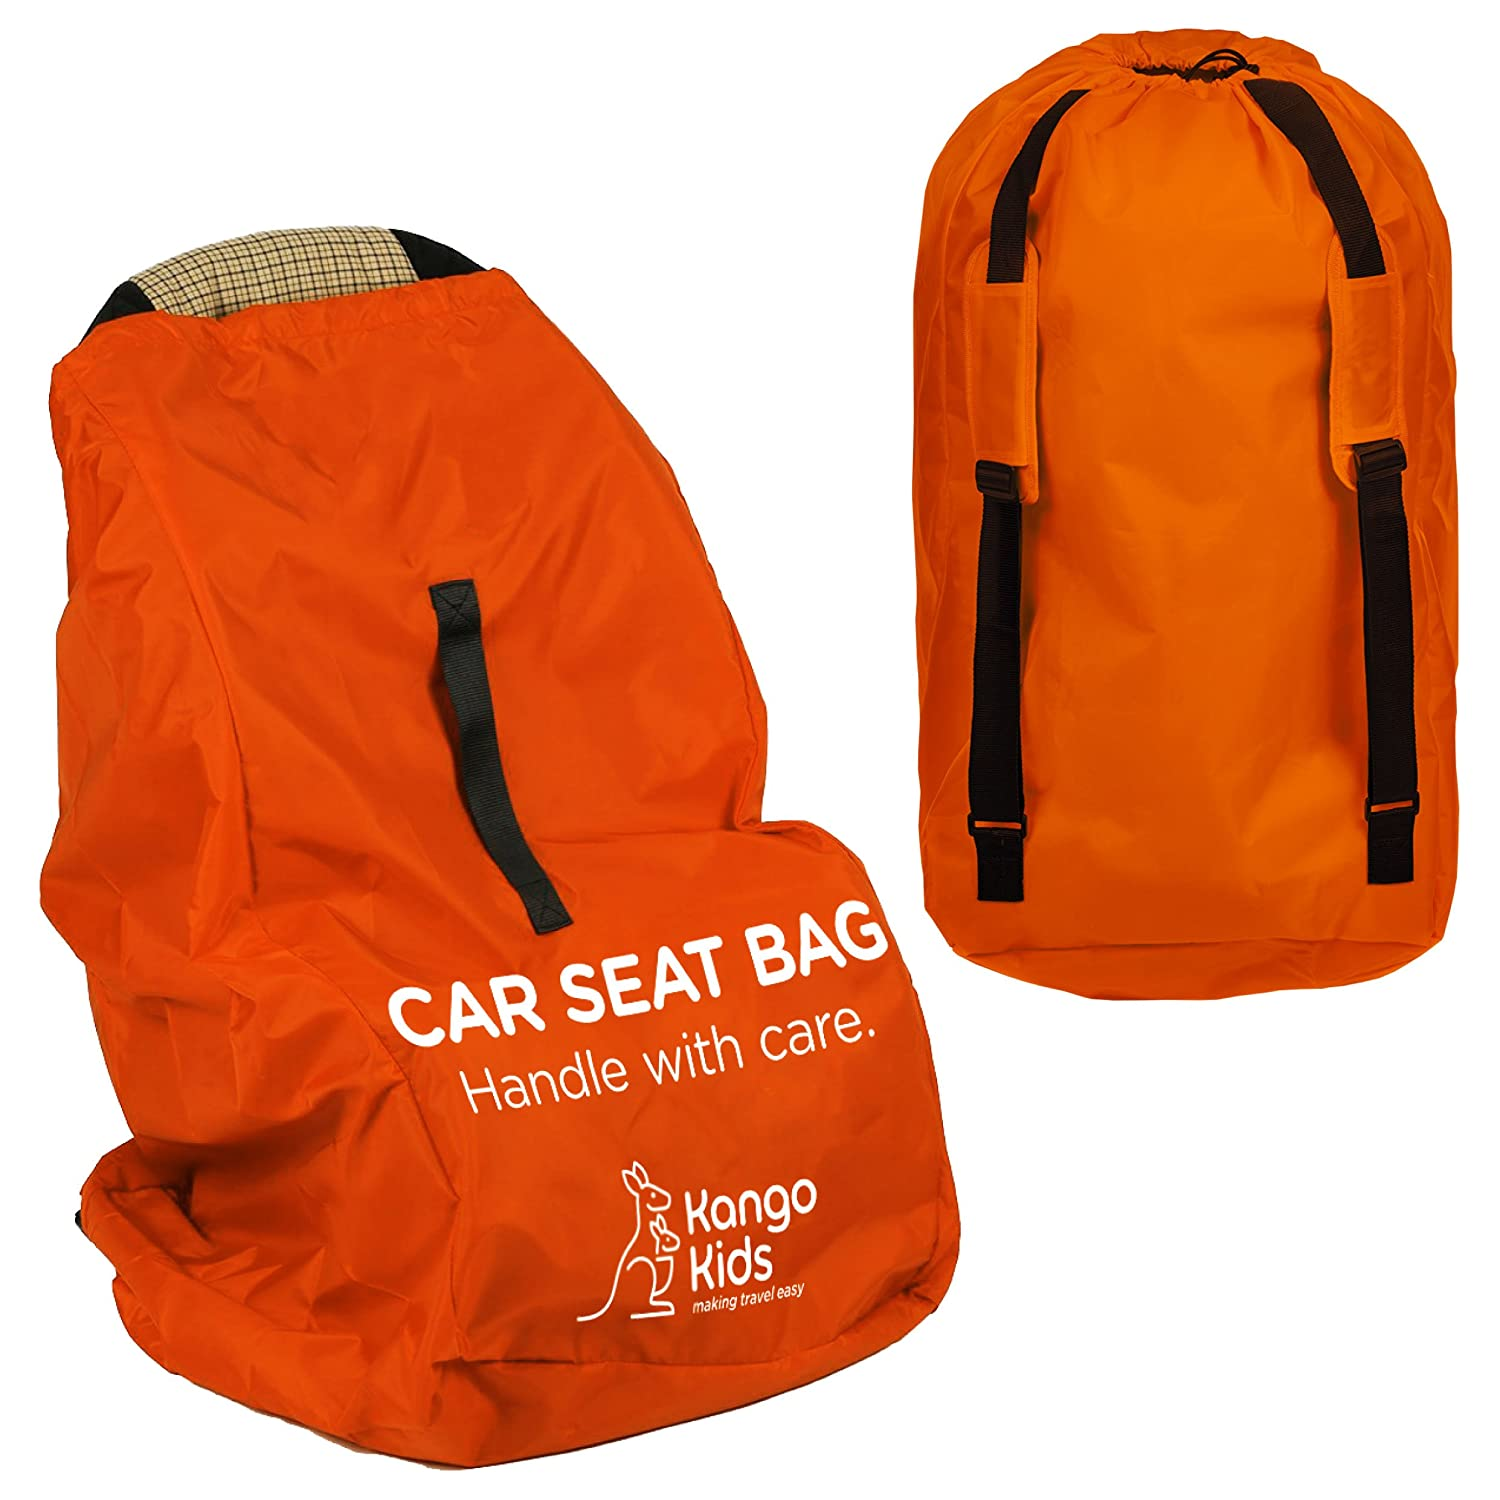 Car Seat Travel Bag -Make Travel Easier & Save Money. Carseat Carrier for Airport - Protect your Child's CarSeats & Stroller from Germs & Damage. Durable, Easy to Carry Padded Backpack KangoKids KangoKidsCarSeat